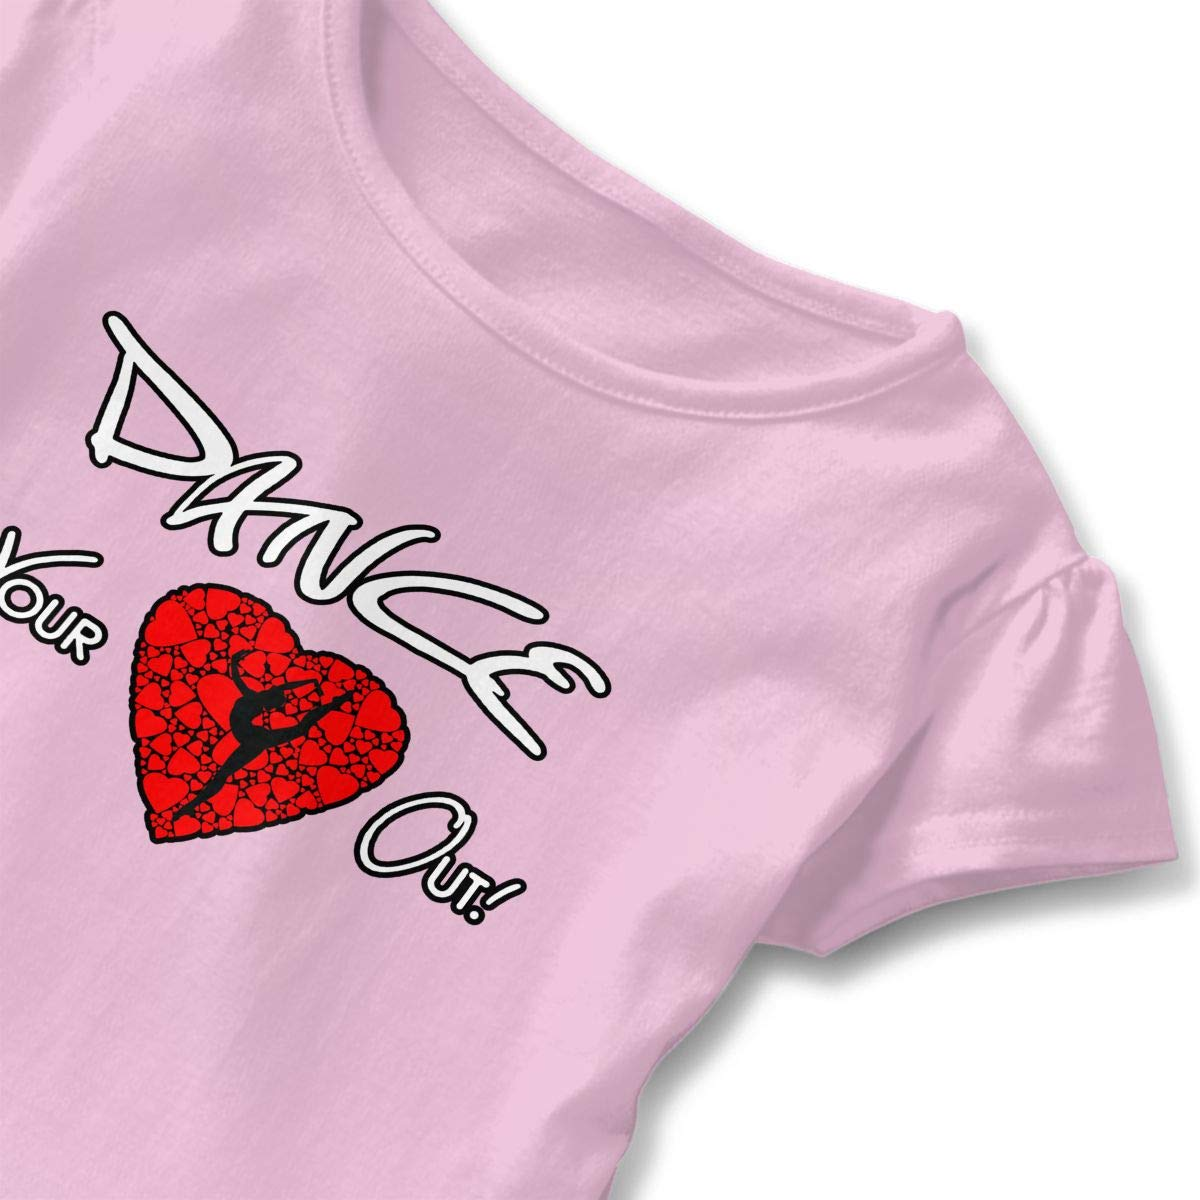 Dance Your Heart Out Toddler Baby Girls Cotton Ruffle Short Sleeve Top Comfortable T-Shirt 2-6T